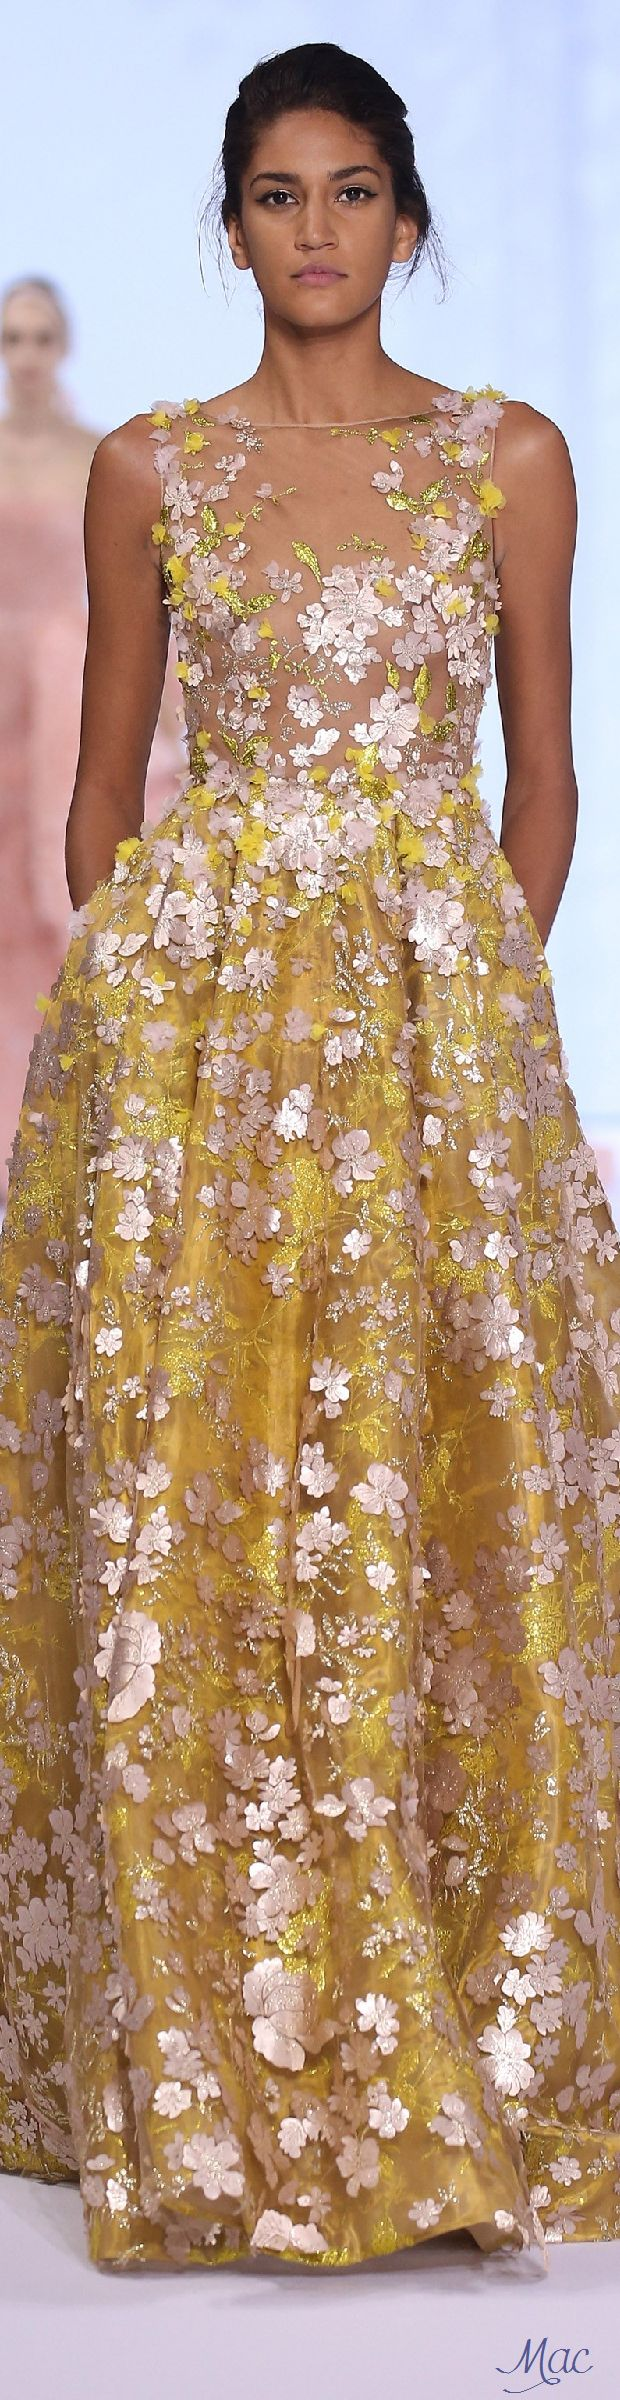 Best 25+ Haute couture dresses ideas on Pinterest | Haute couture ...